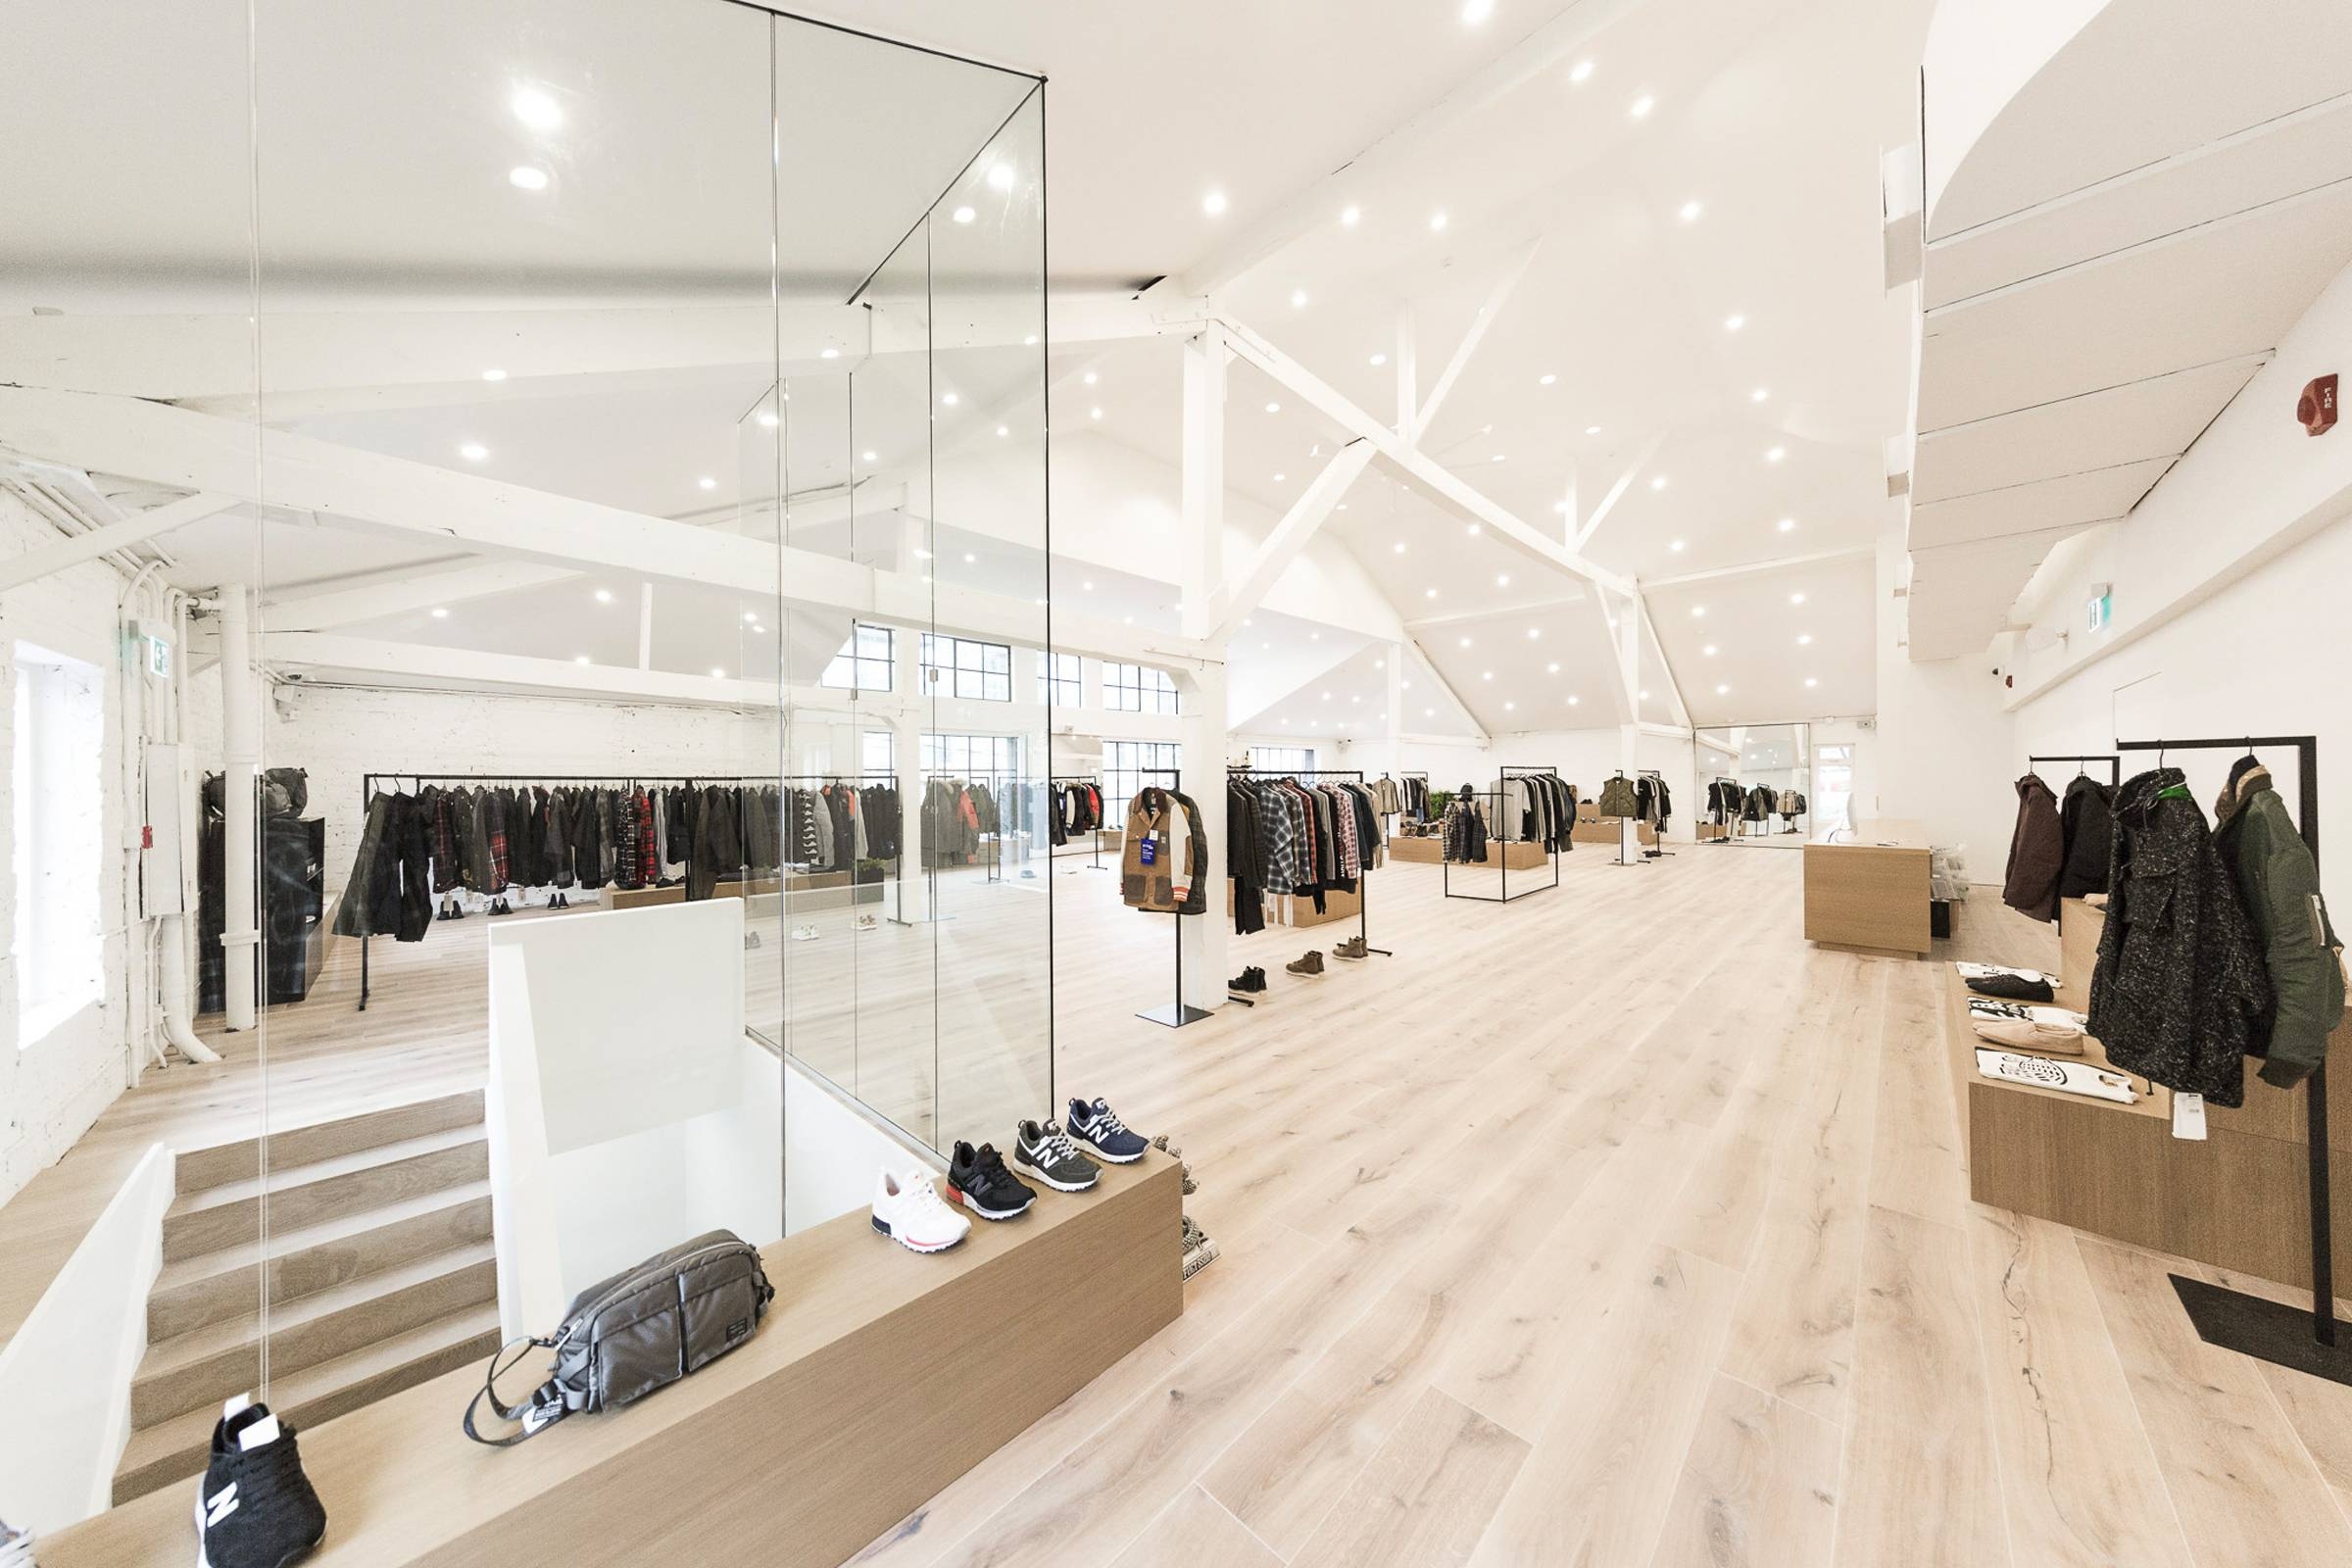 Can Brick and Mortar Retail Survive?